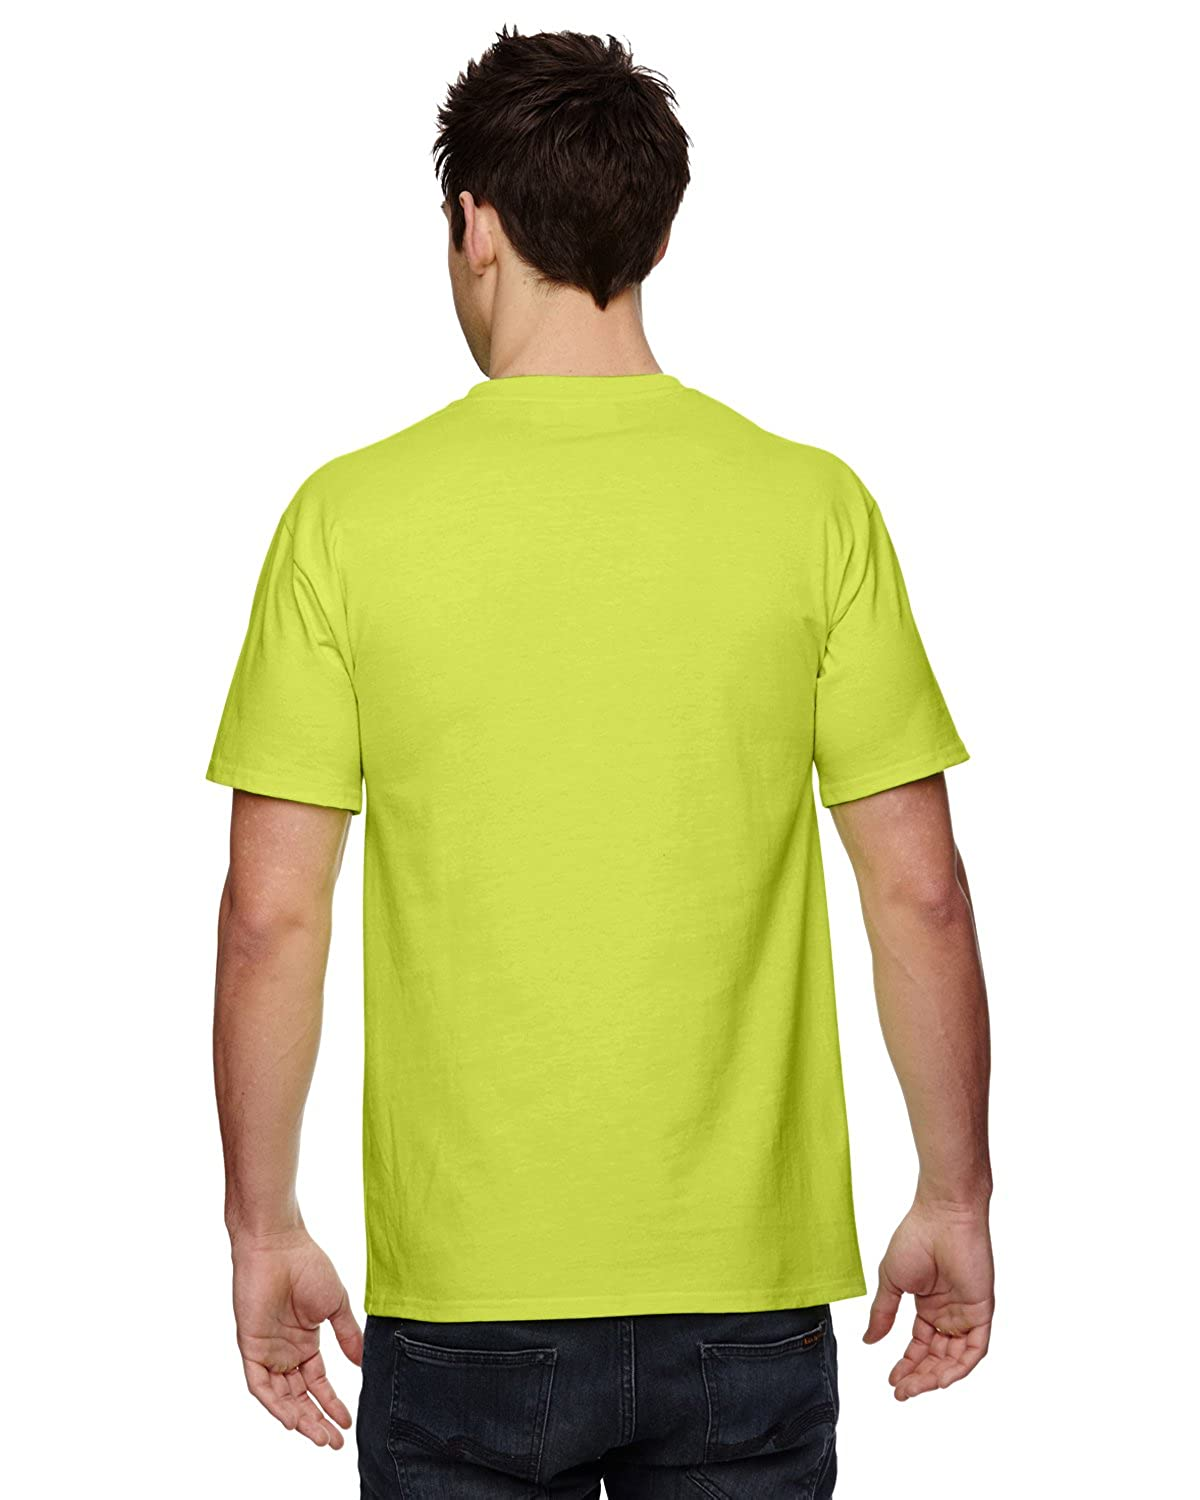 Fruit of the Loom Mens 4-Pack of Pocket T-Shirts